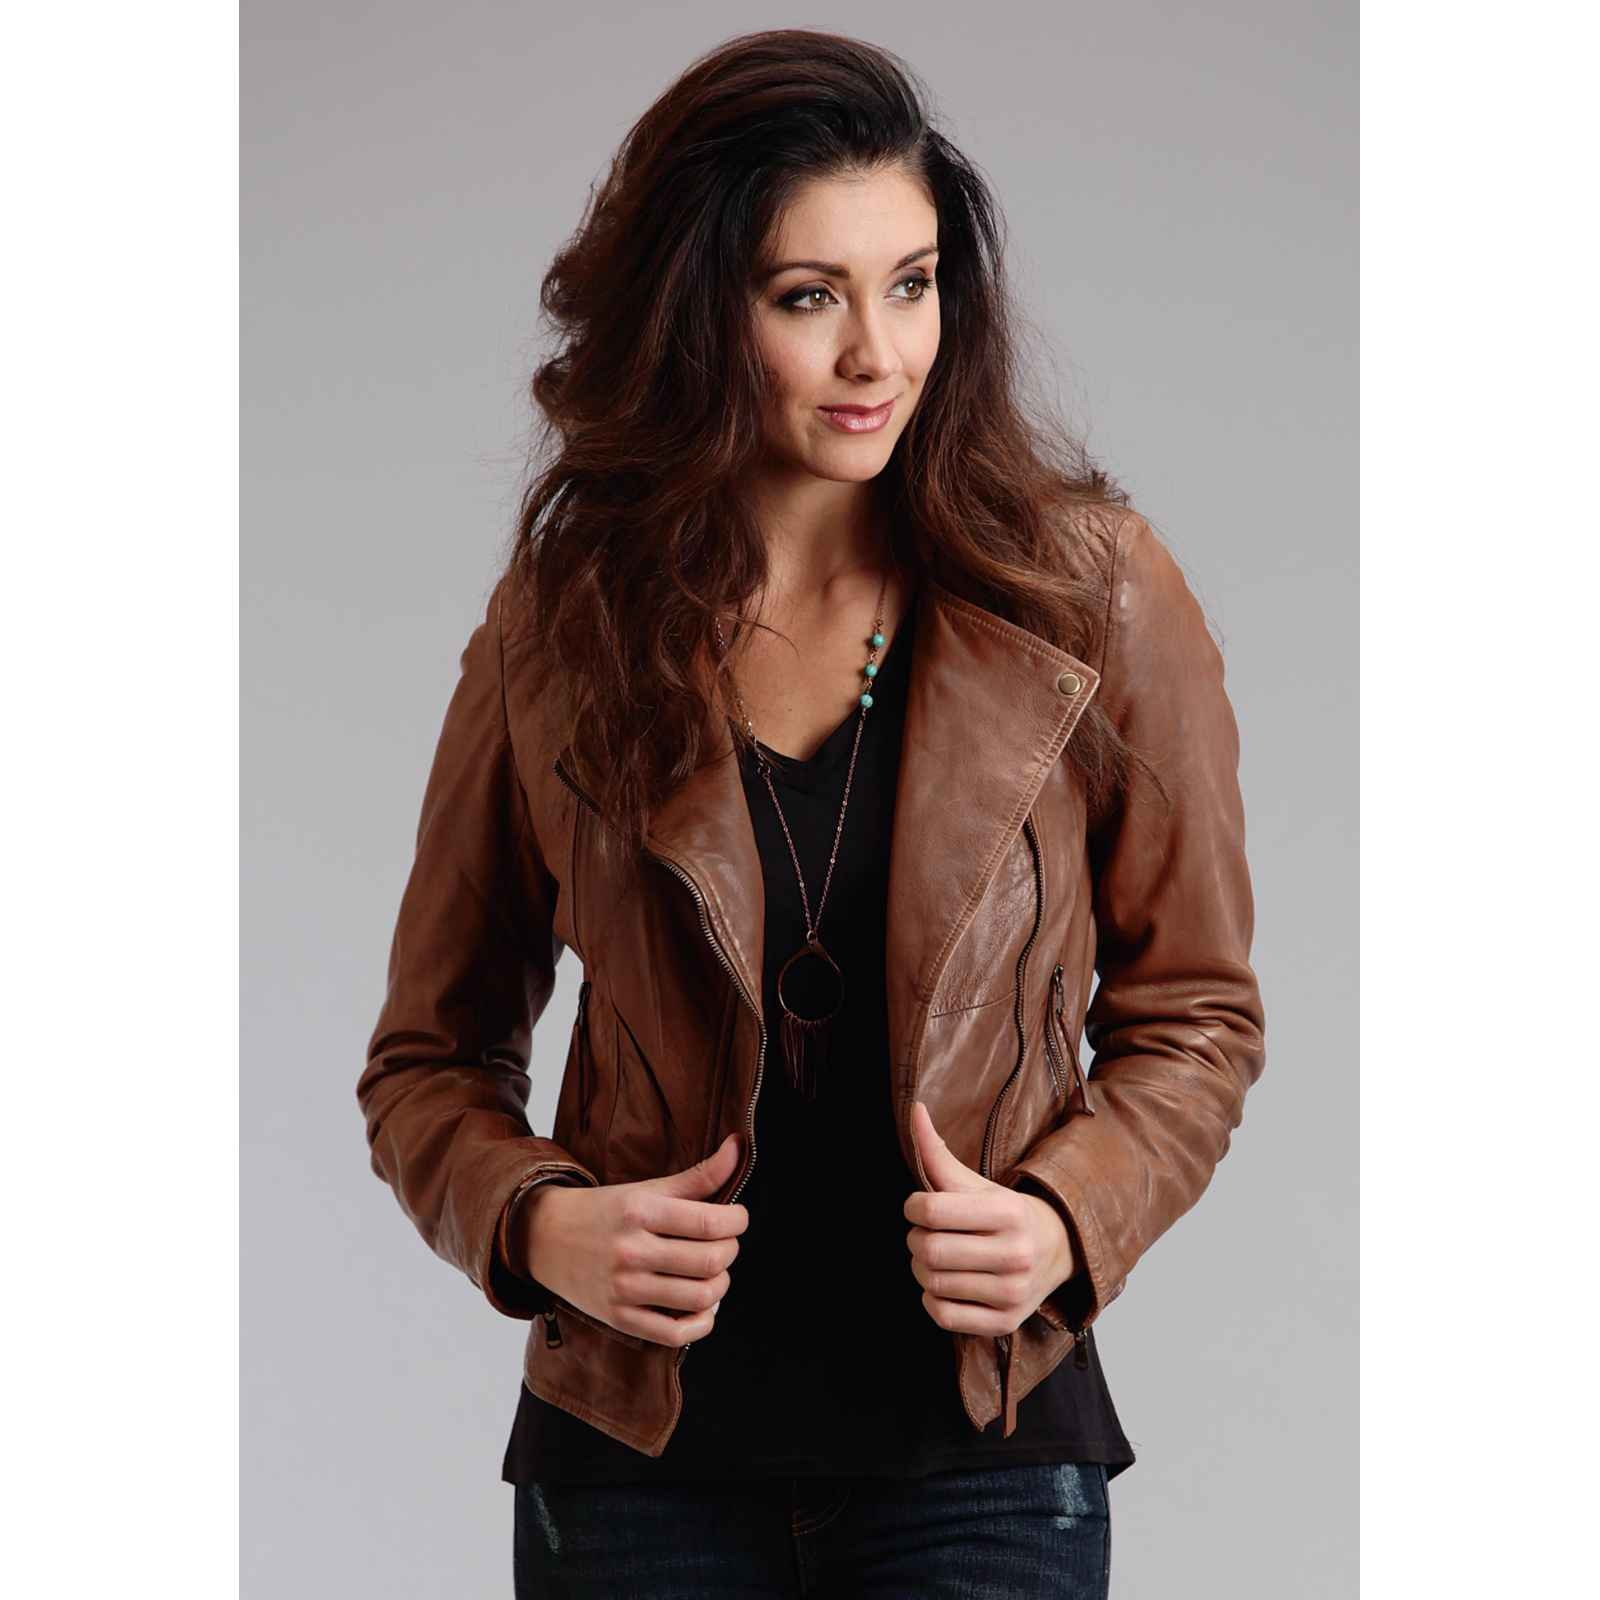 Motto Style Leather Jacket Stetson Ladies Collection-oute (xl) 11-098-0539-6661BR by Stetson